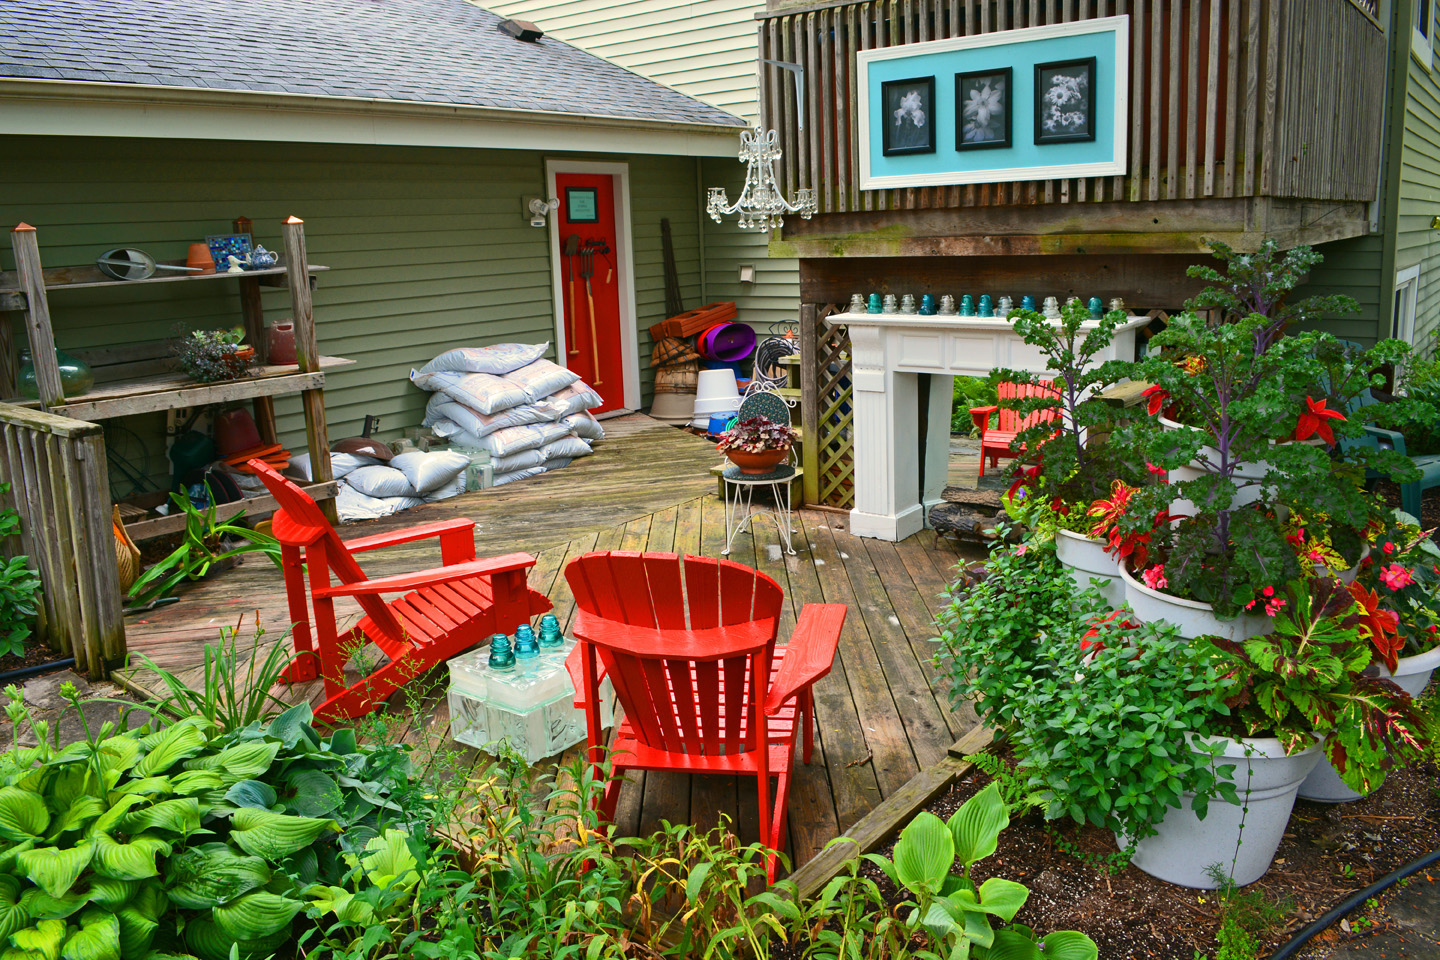 An Outdoor Garden Potting Bench Room